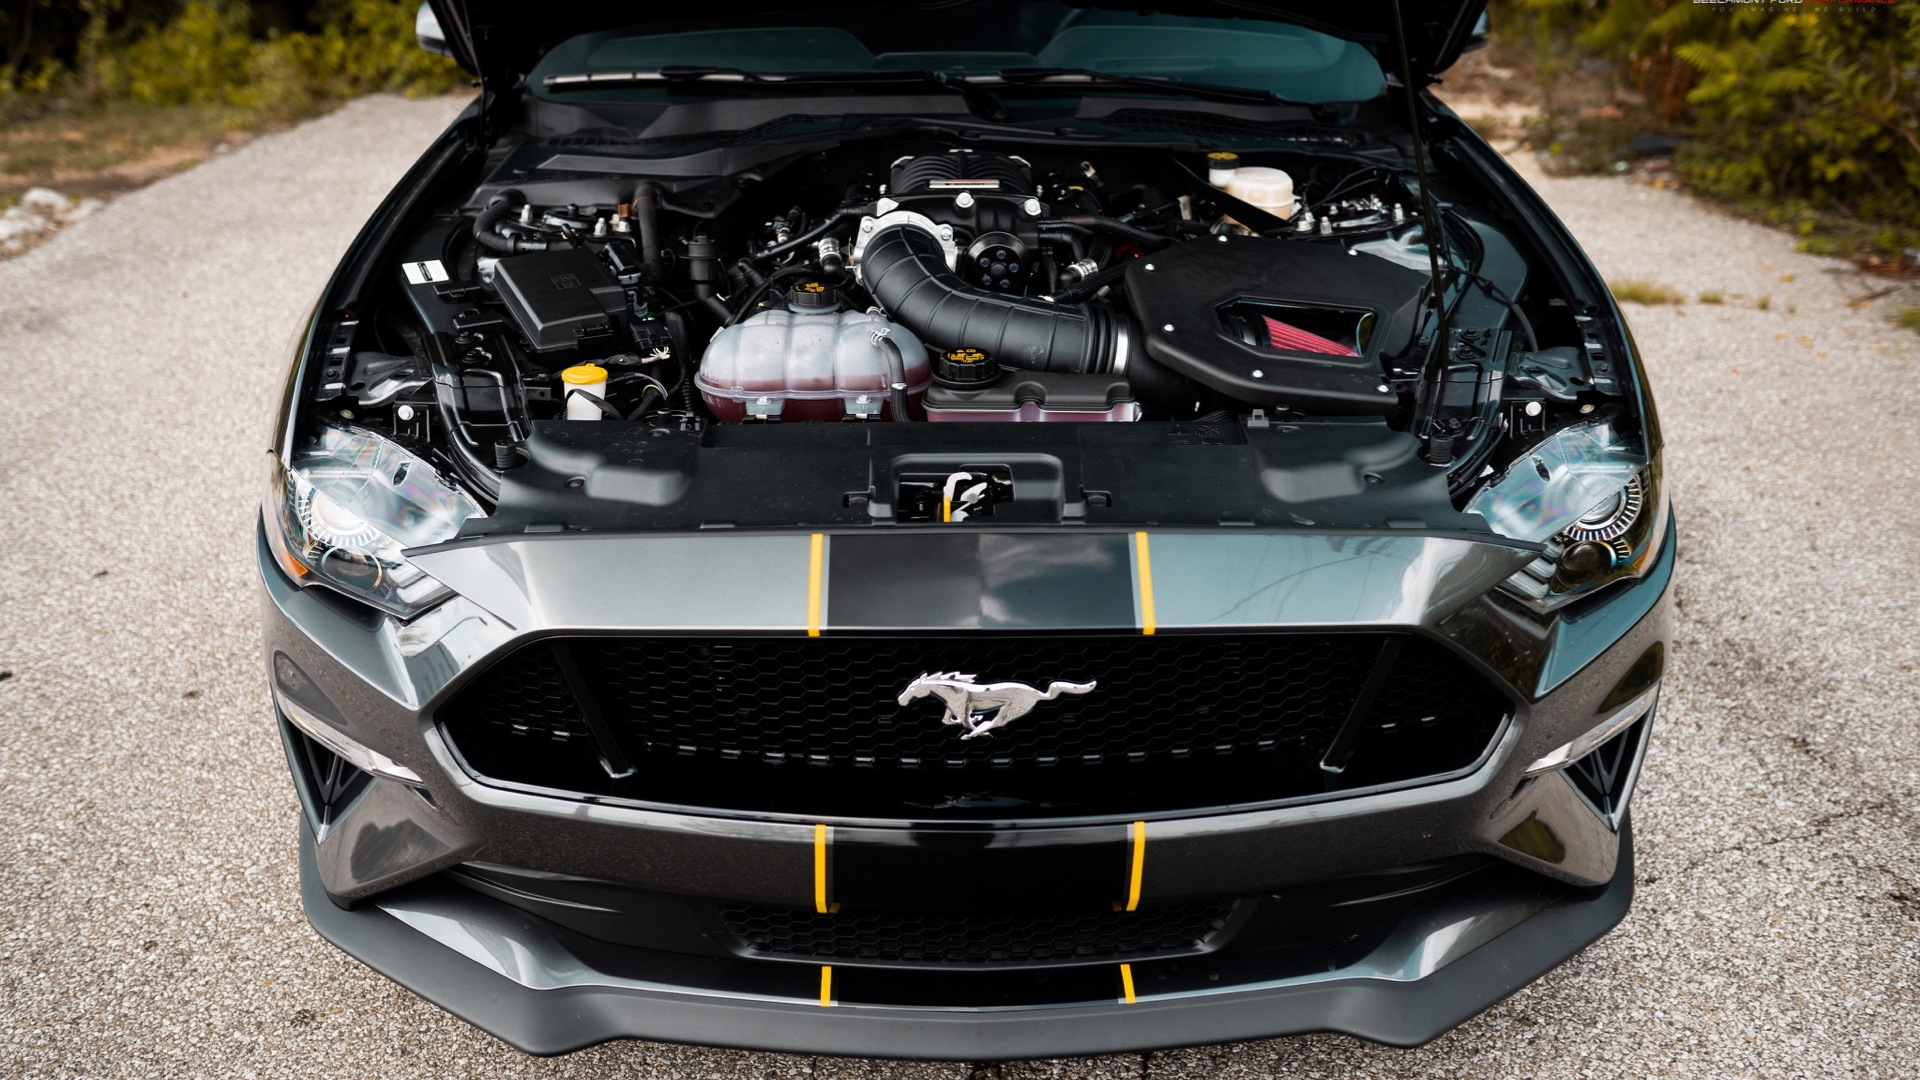 Beechmont Ford Mustang GT